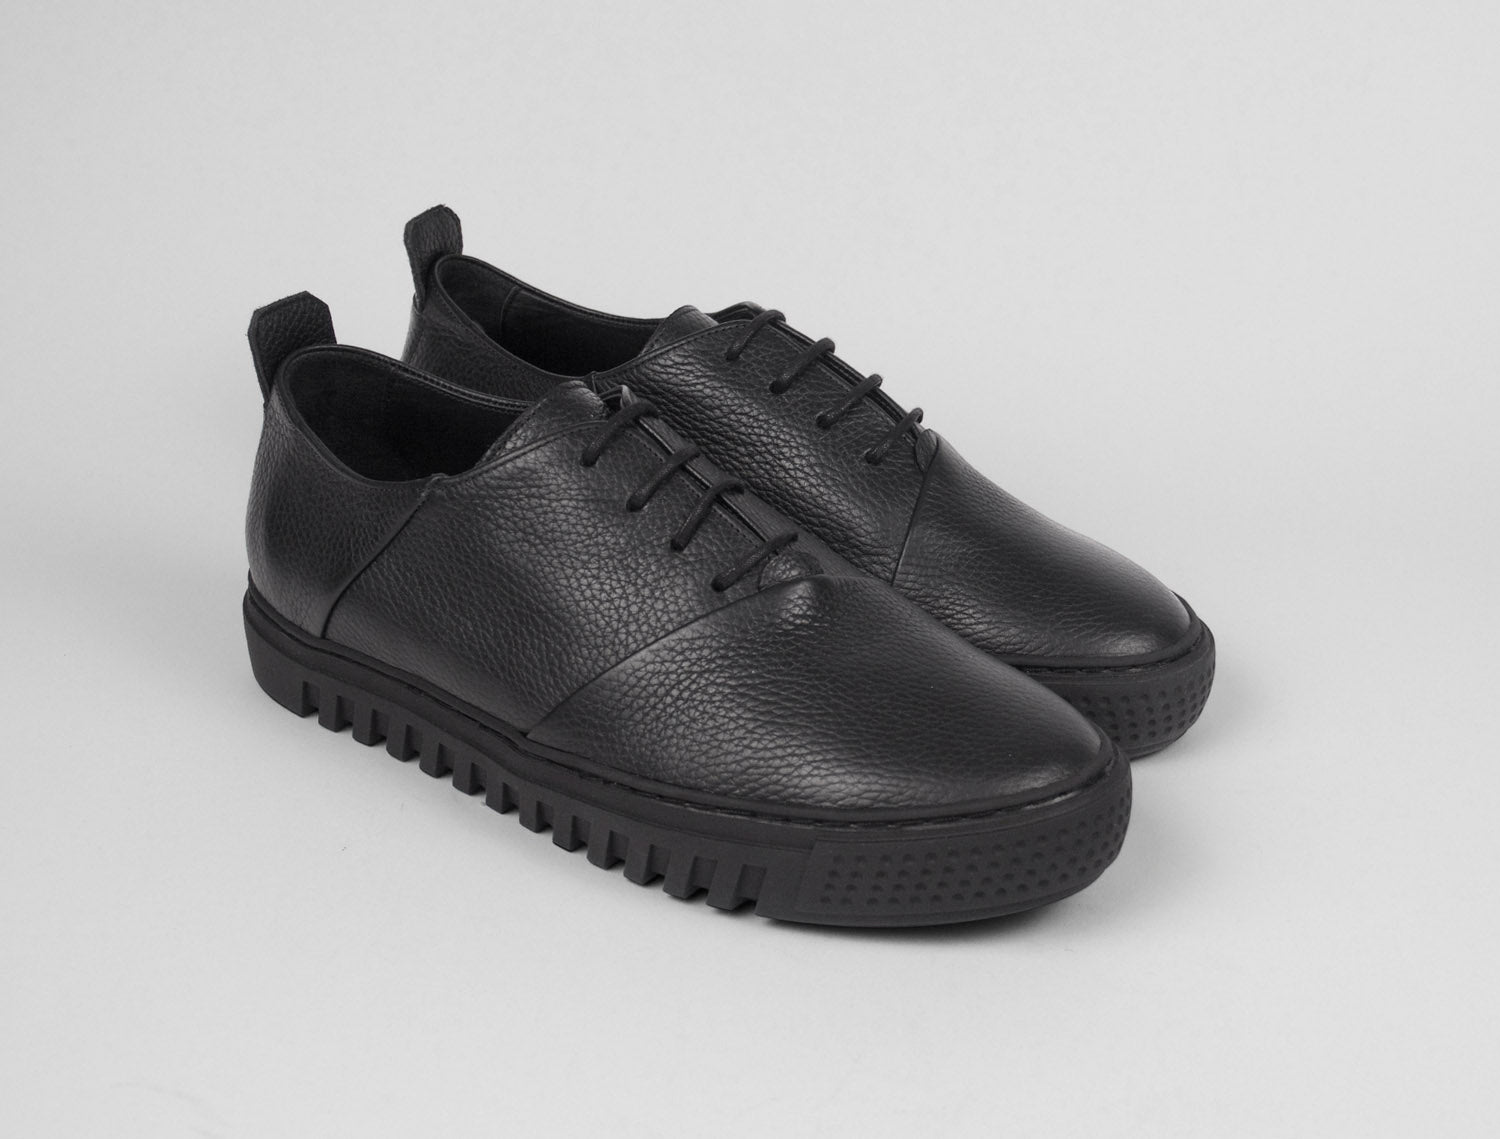 Womens Low Top Trainer in Black Tumbled Leather